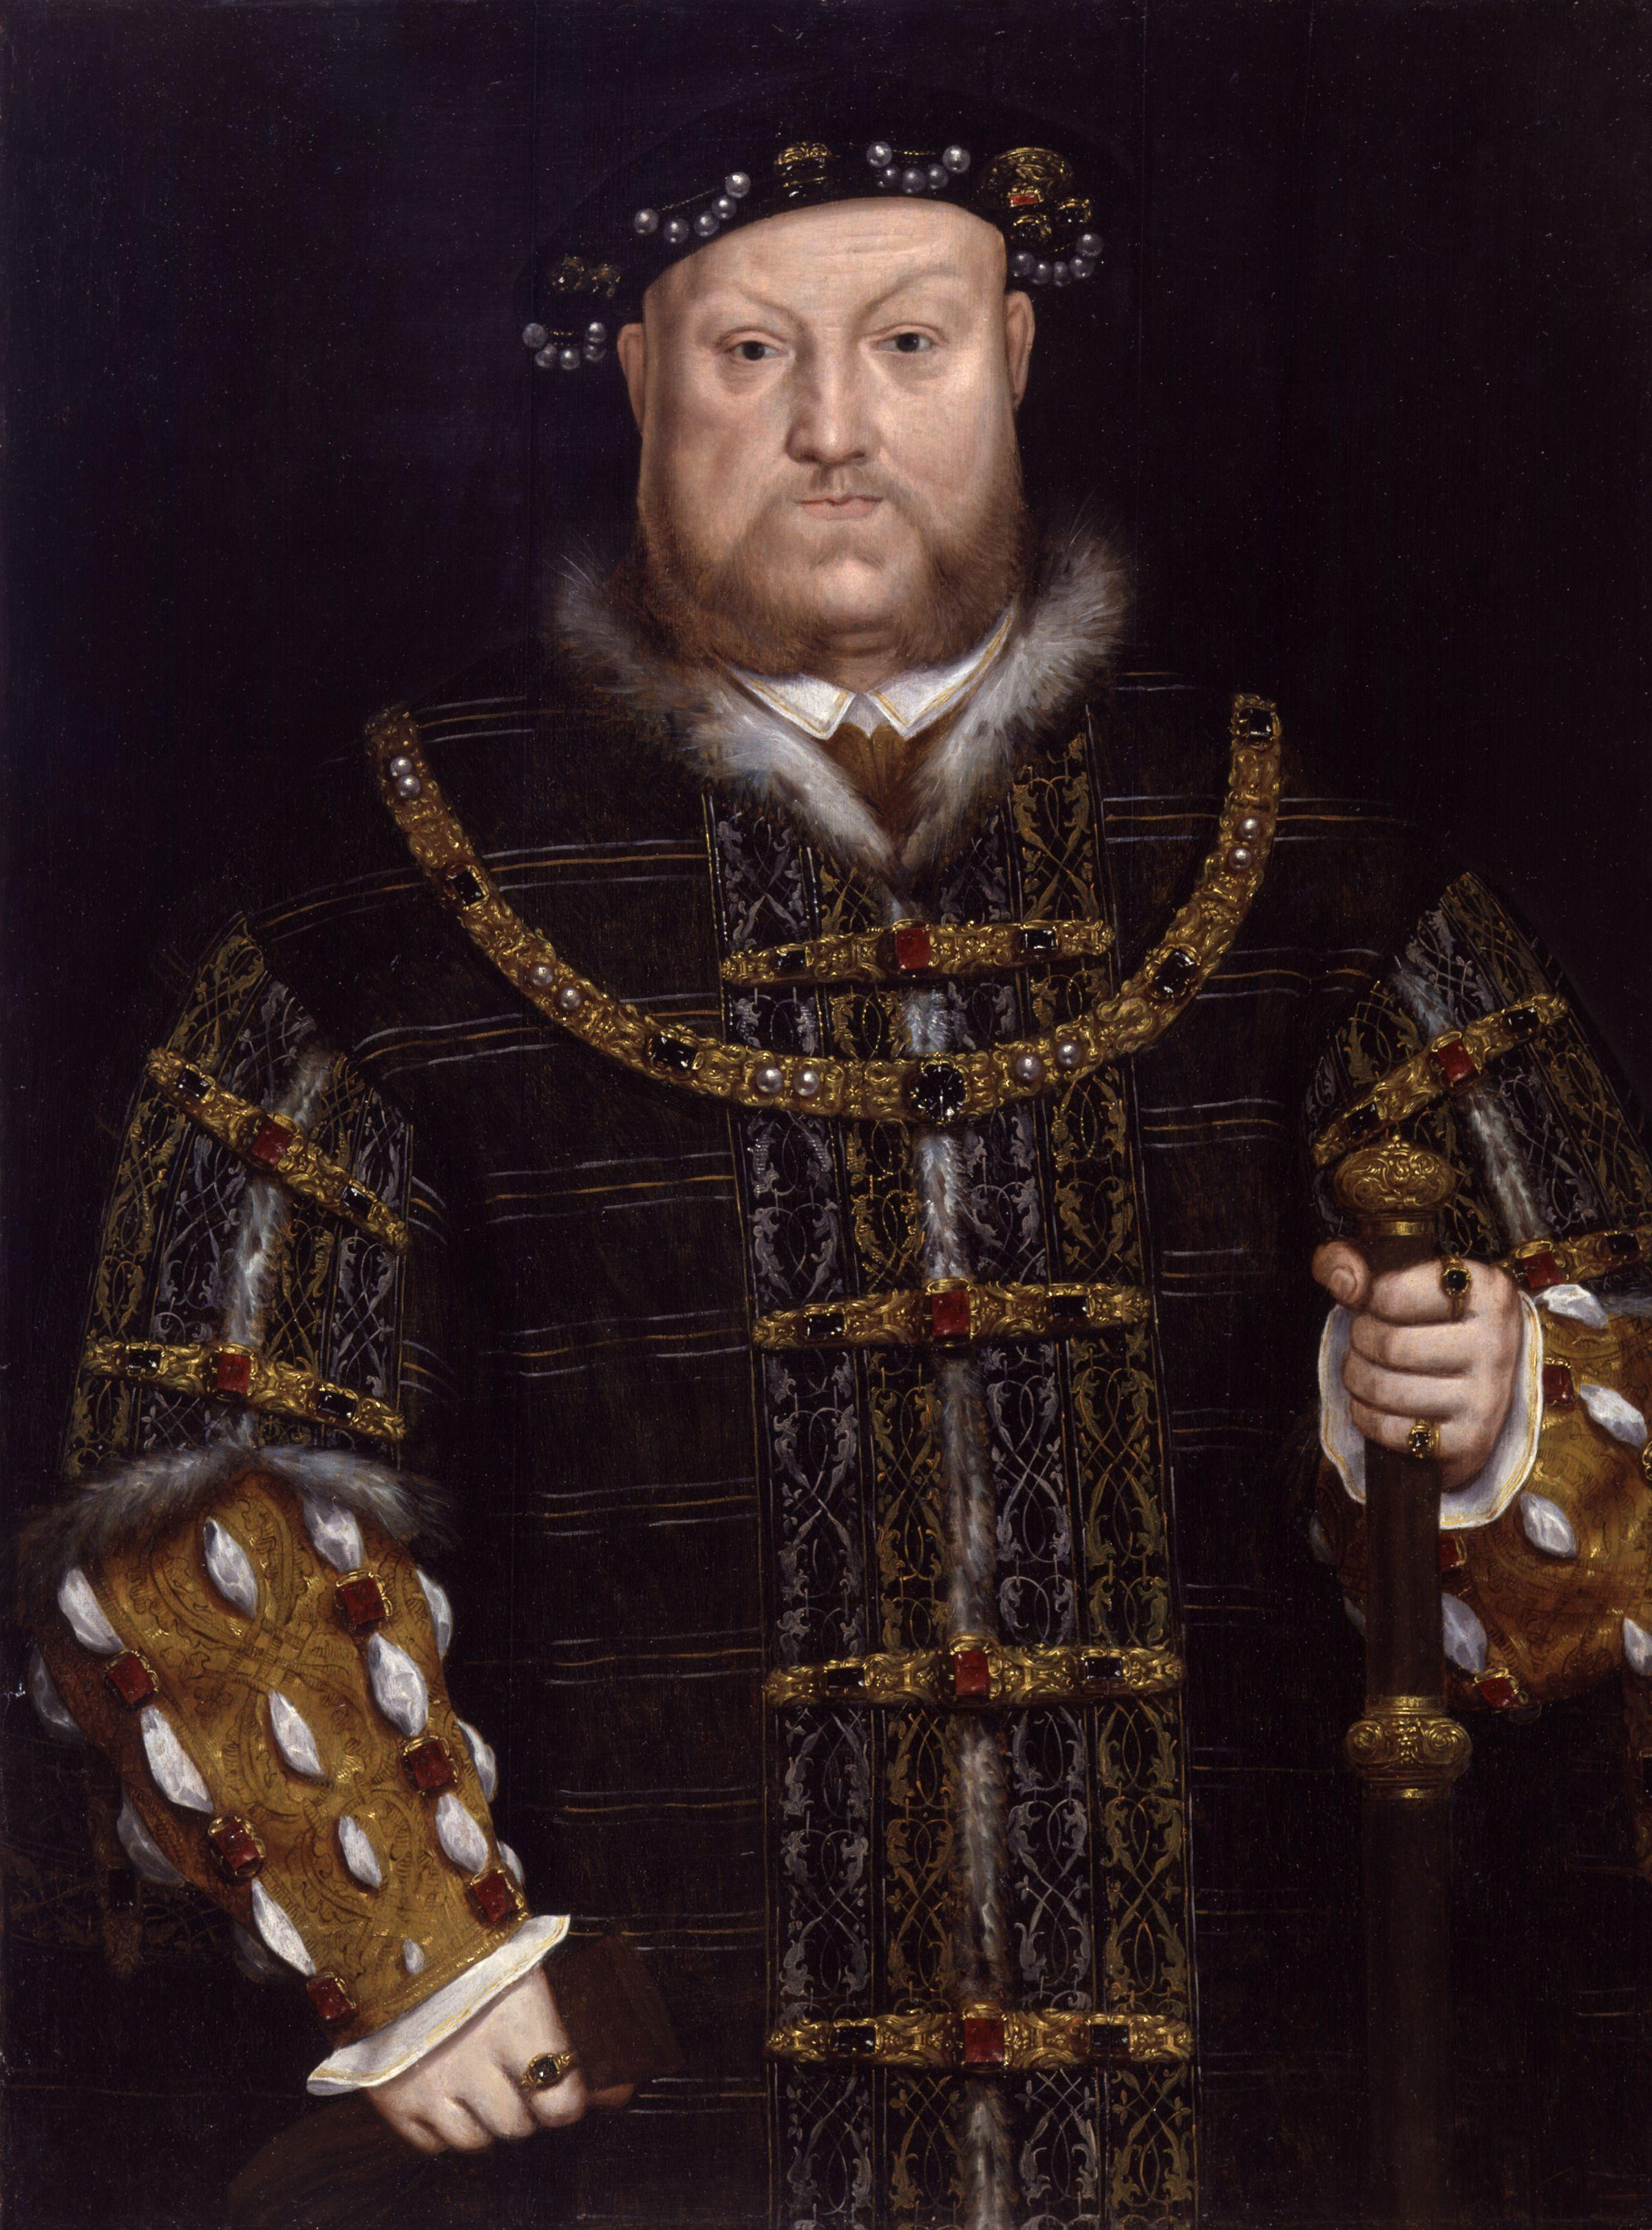 Portrait of Henry VIII in a Great Coat Holding a Staff